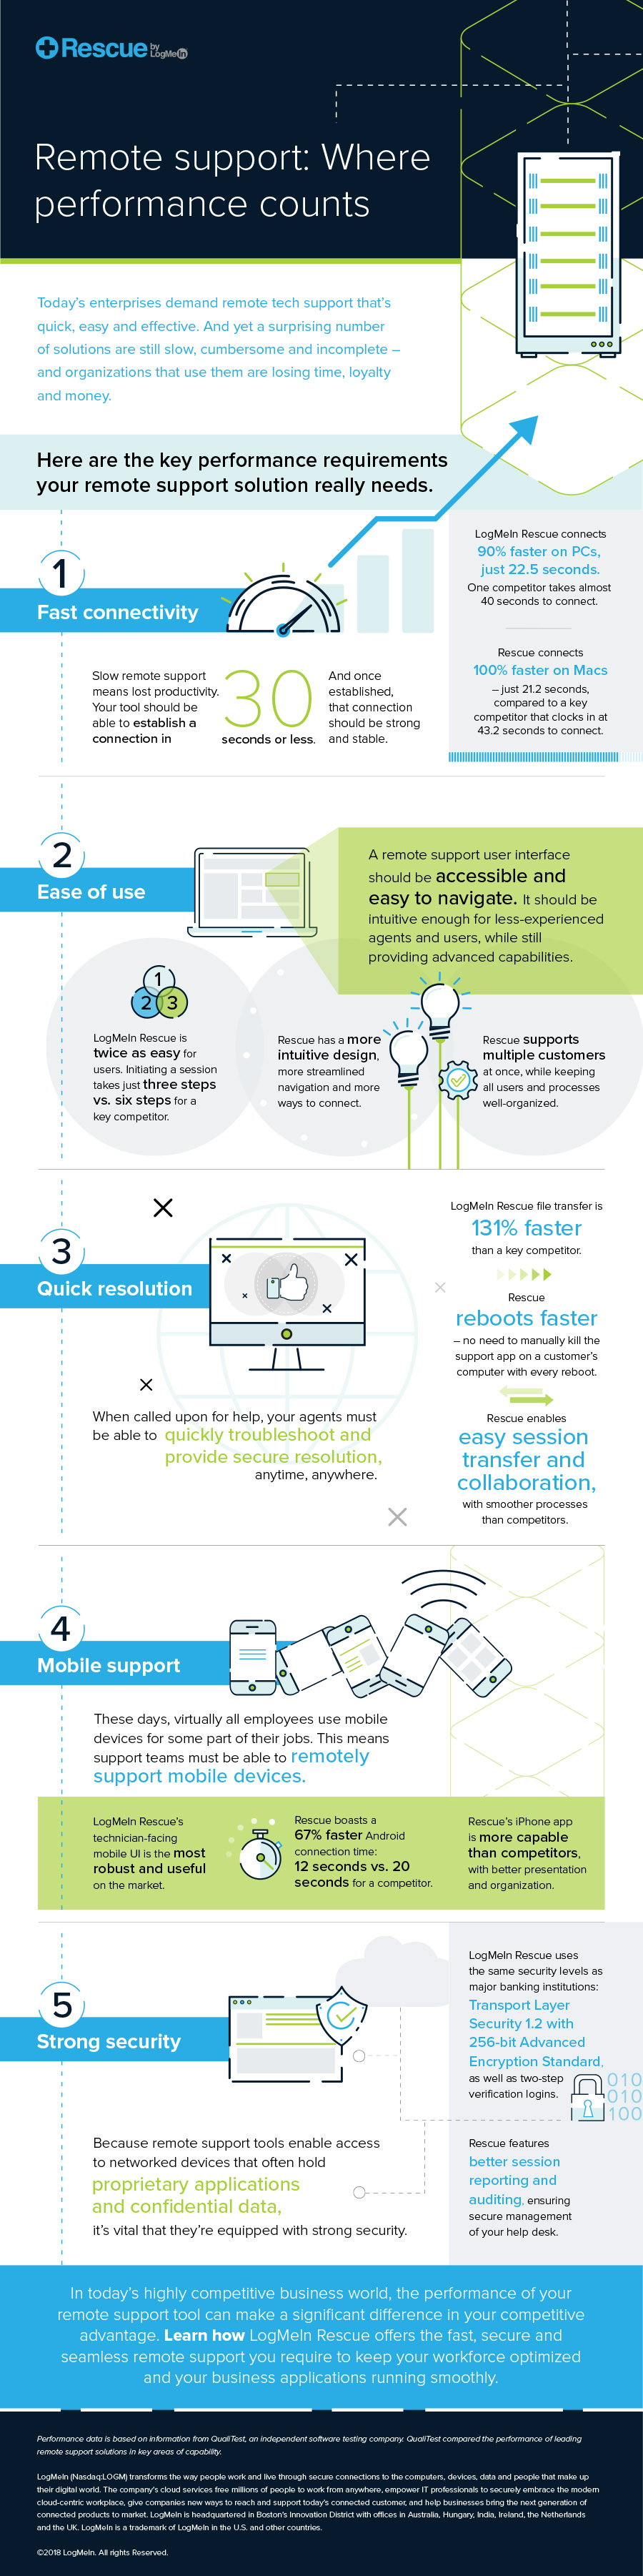 Infographic: Remote support: Where performance counts